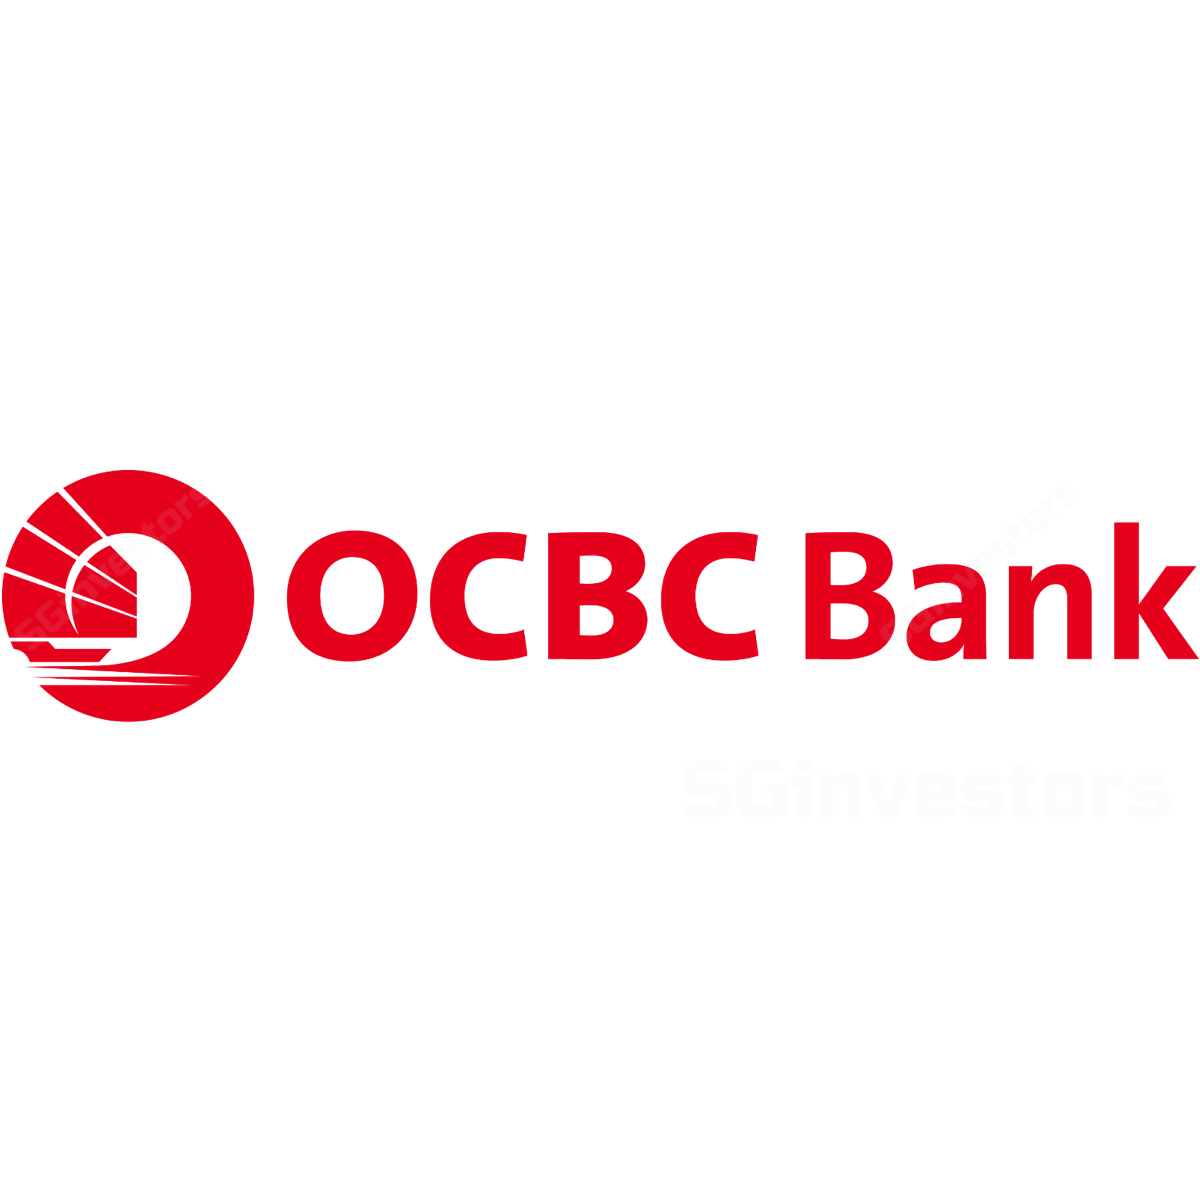 Oversea-Chinese Banking Corp (OCBC SP) - UOB Kay Hian 2017-07-28: 2Q17: Broad-based Growth; Higher CASA Ratio